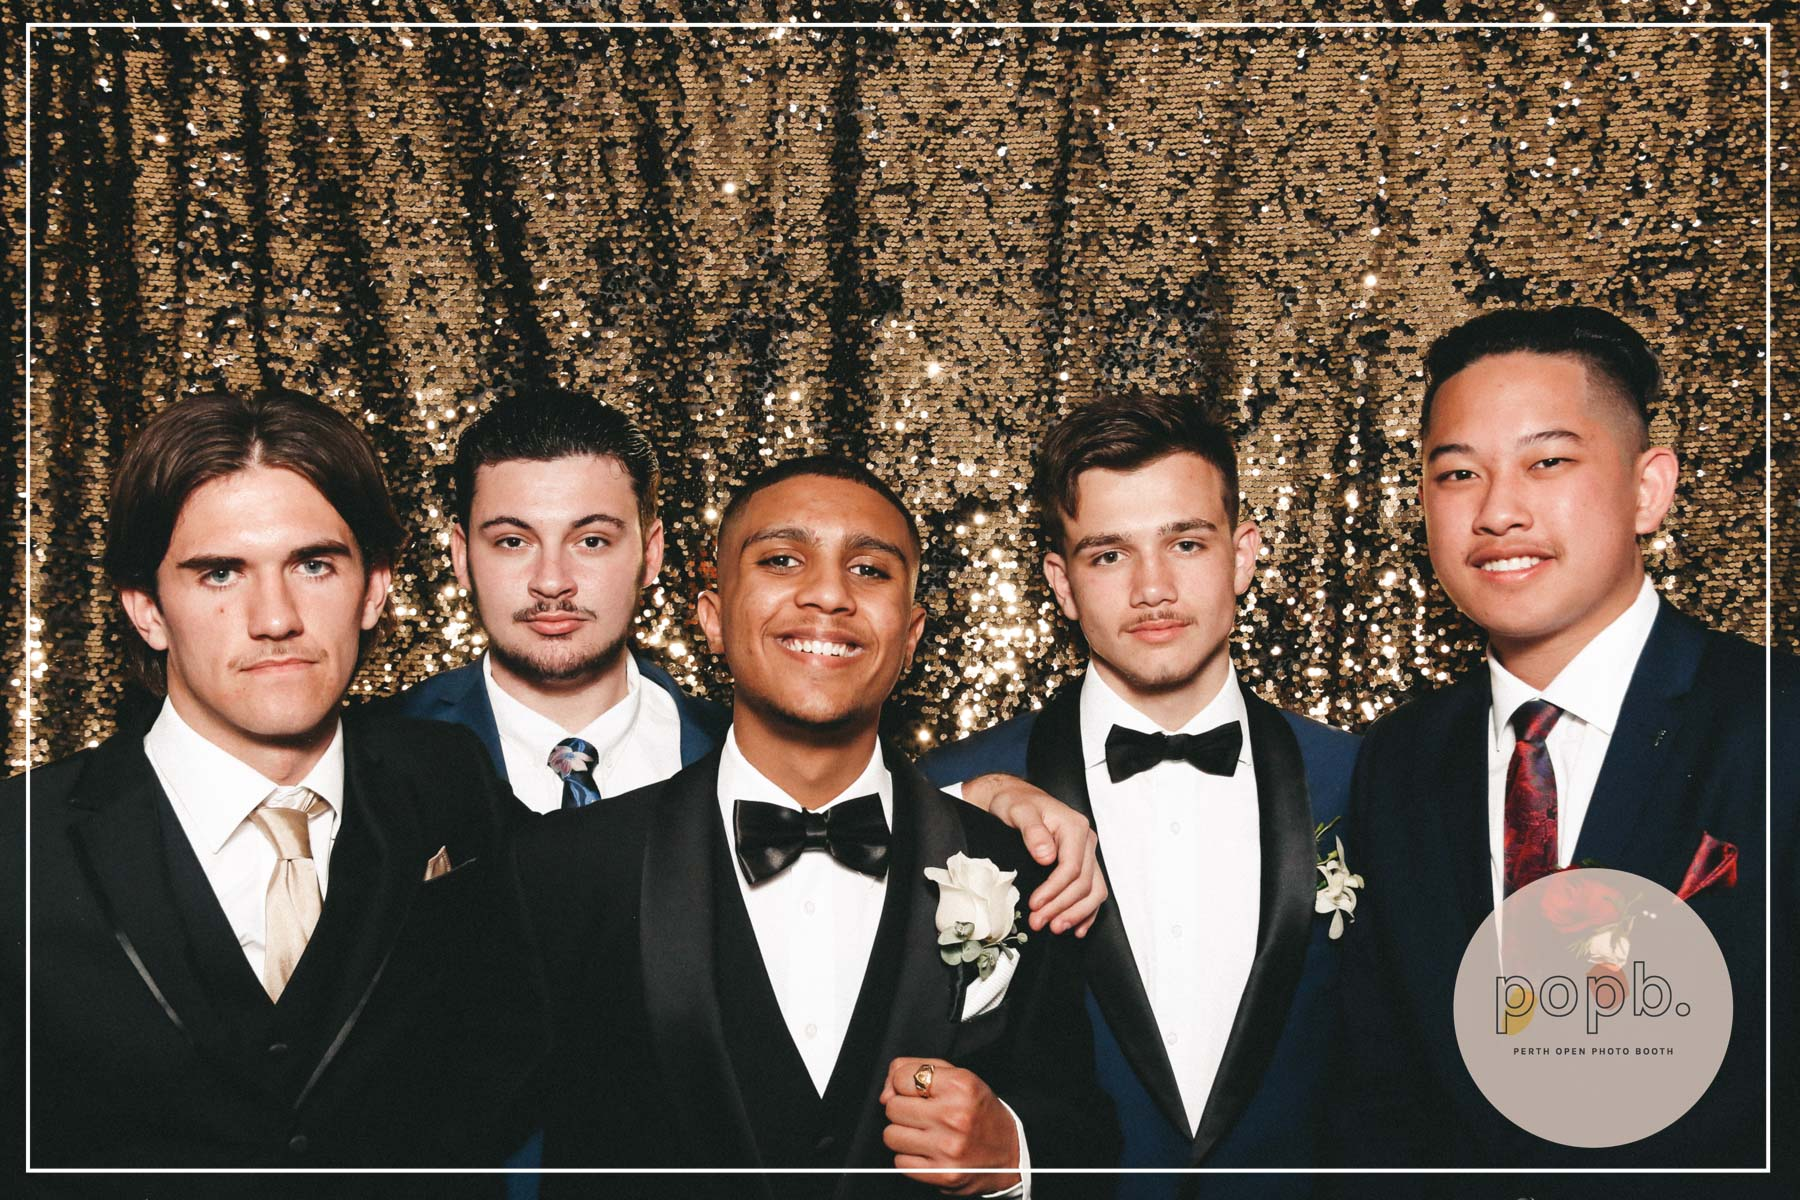 Cecil andrews college ball 2019 - pASSWORD: PROVIDED ON THE NIGHT- ALL LOWERCASE -